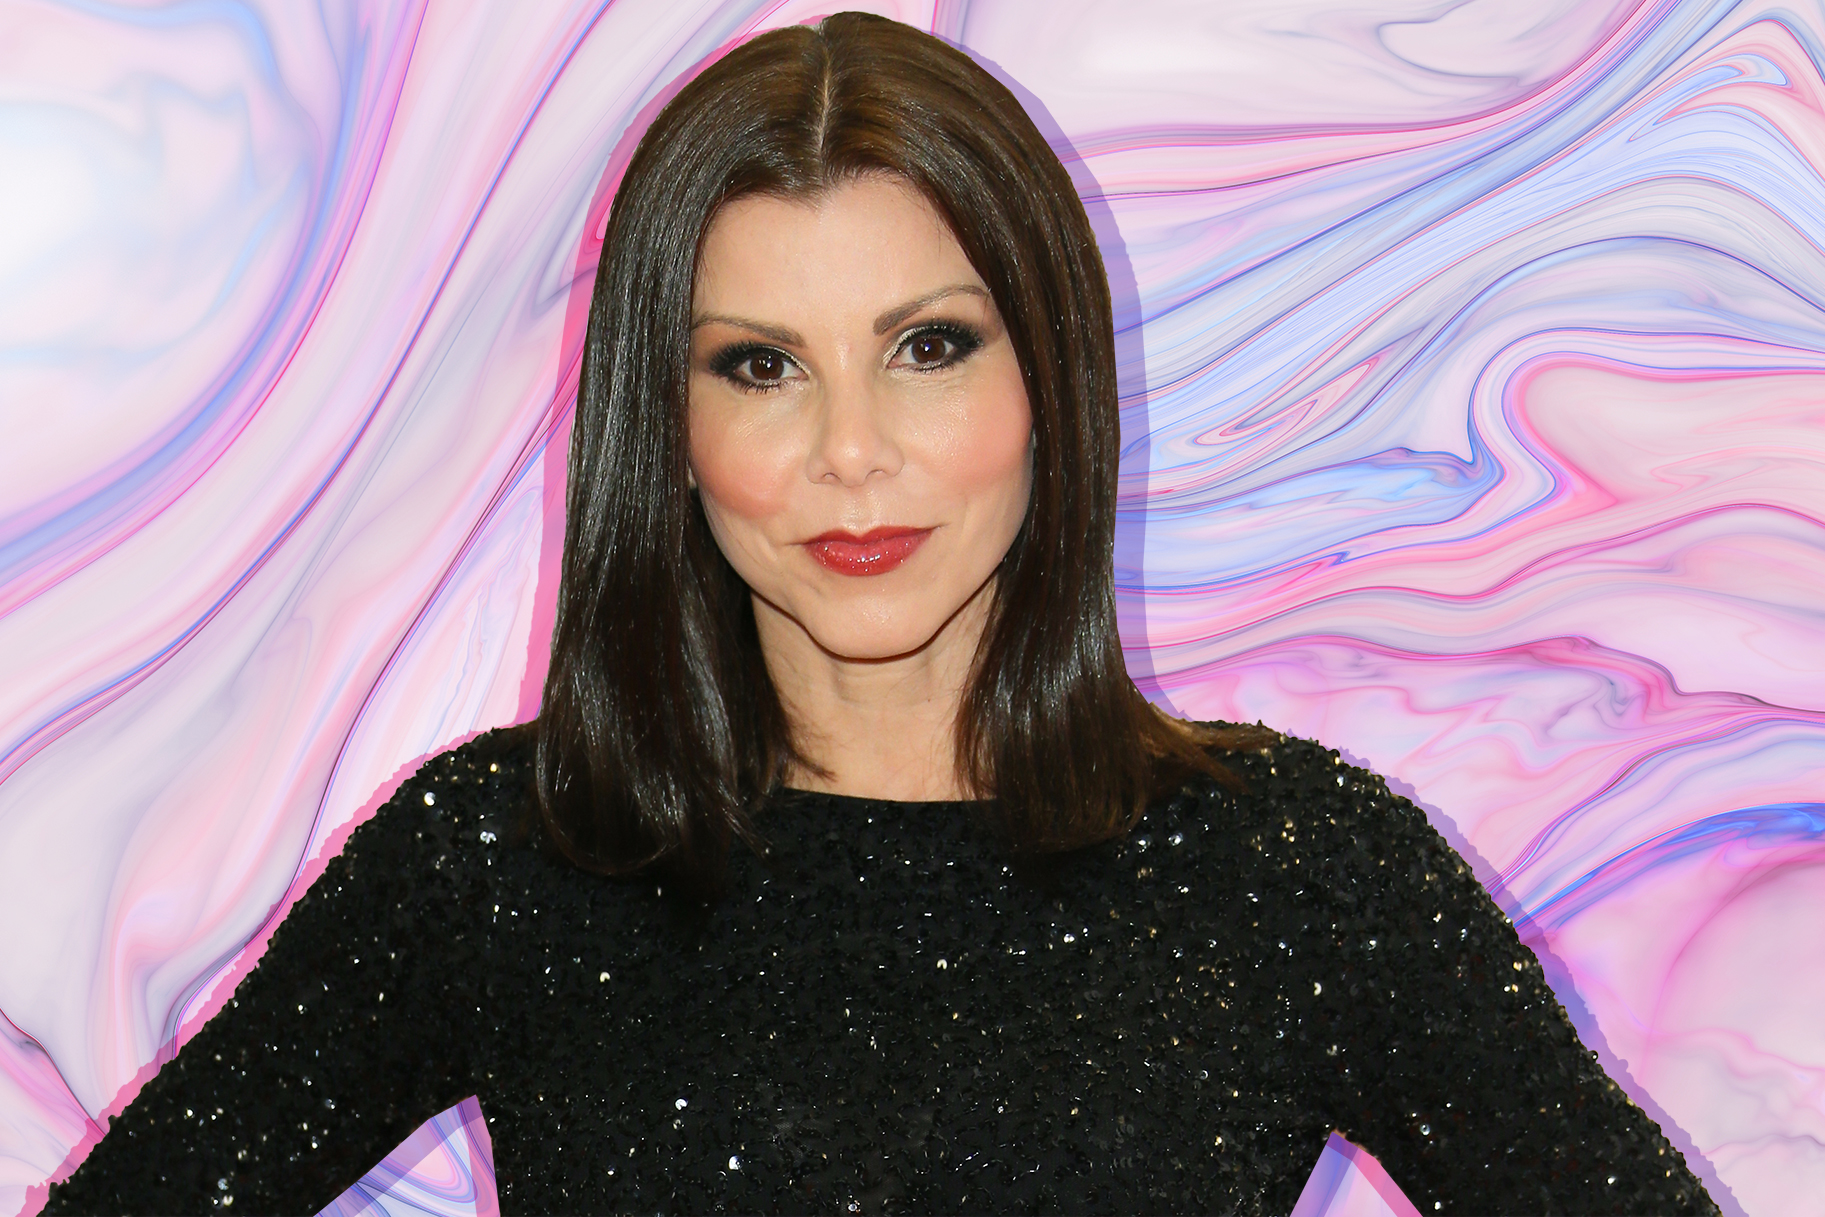 Lookbook Heather Dubrow Makeup